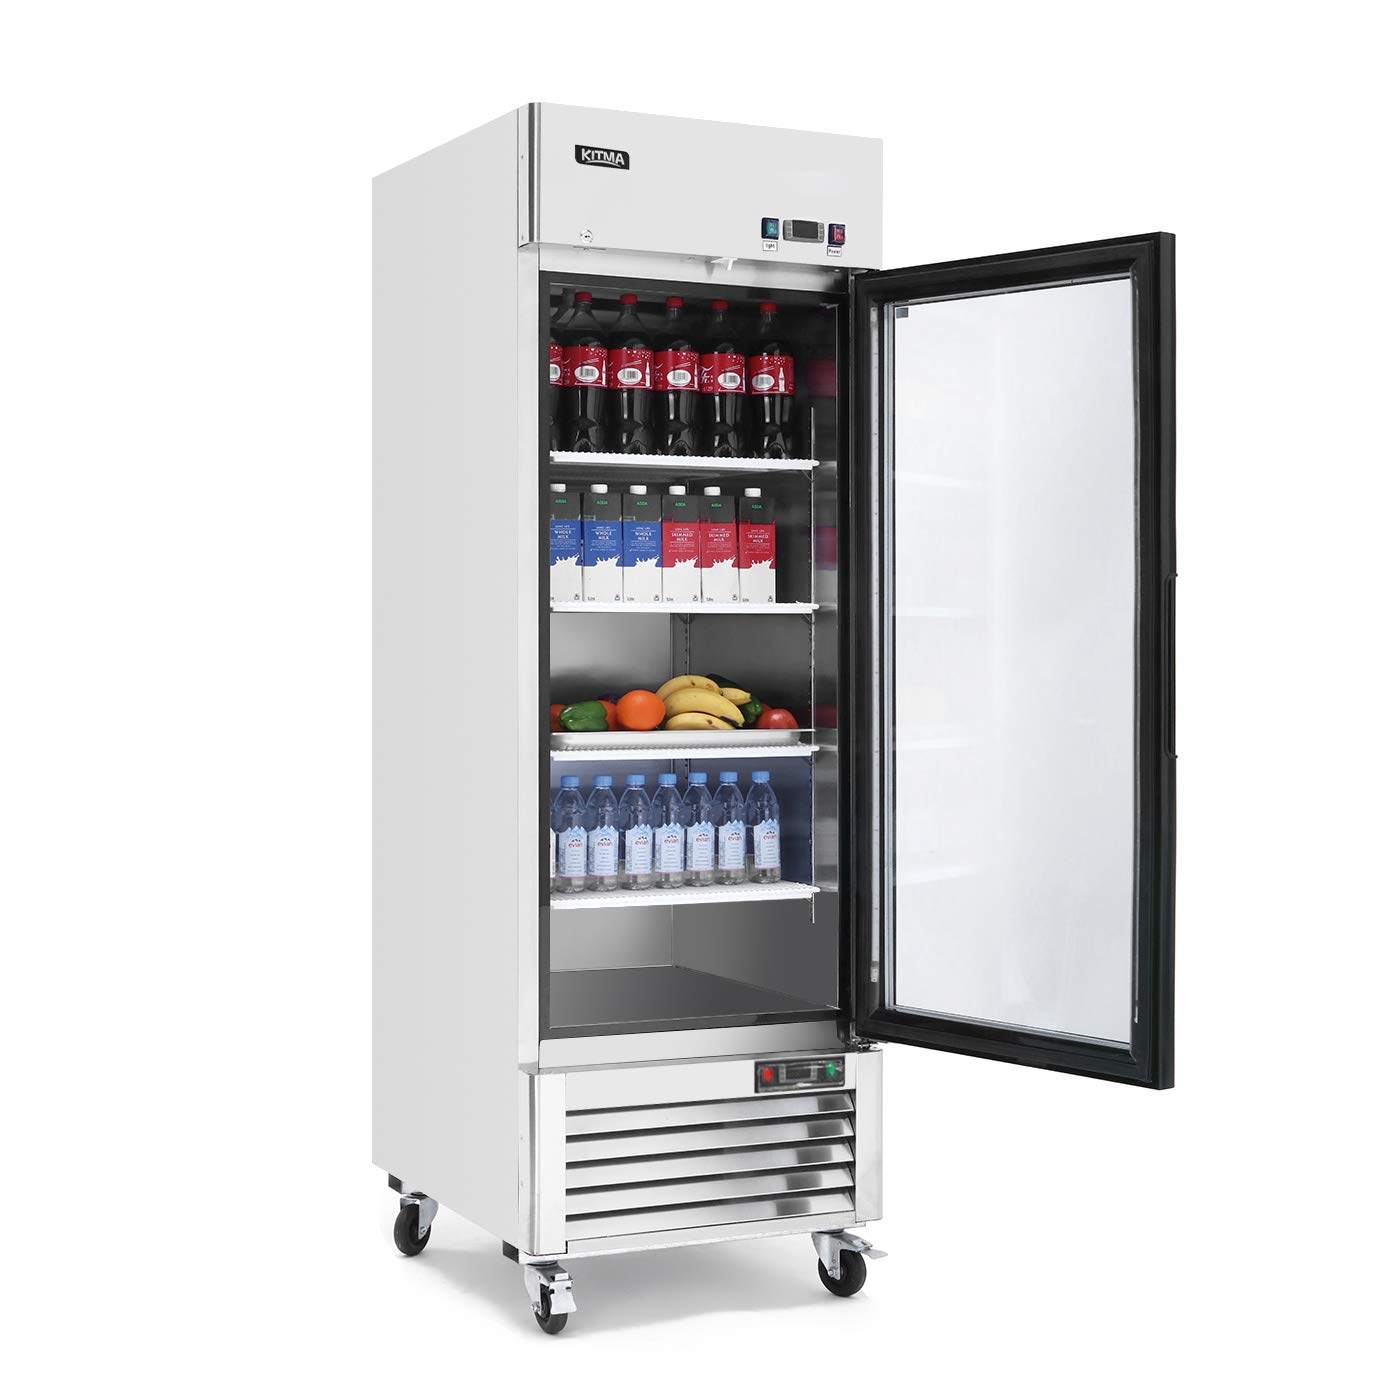 Single Glass Door Merchandiser Refrigerator - KITMA 19.1 Cu.Ft Merchandiser Display Case with LED Lighting for Restaurants, 33° F - 38° F Kitma Direct FCB23RG